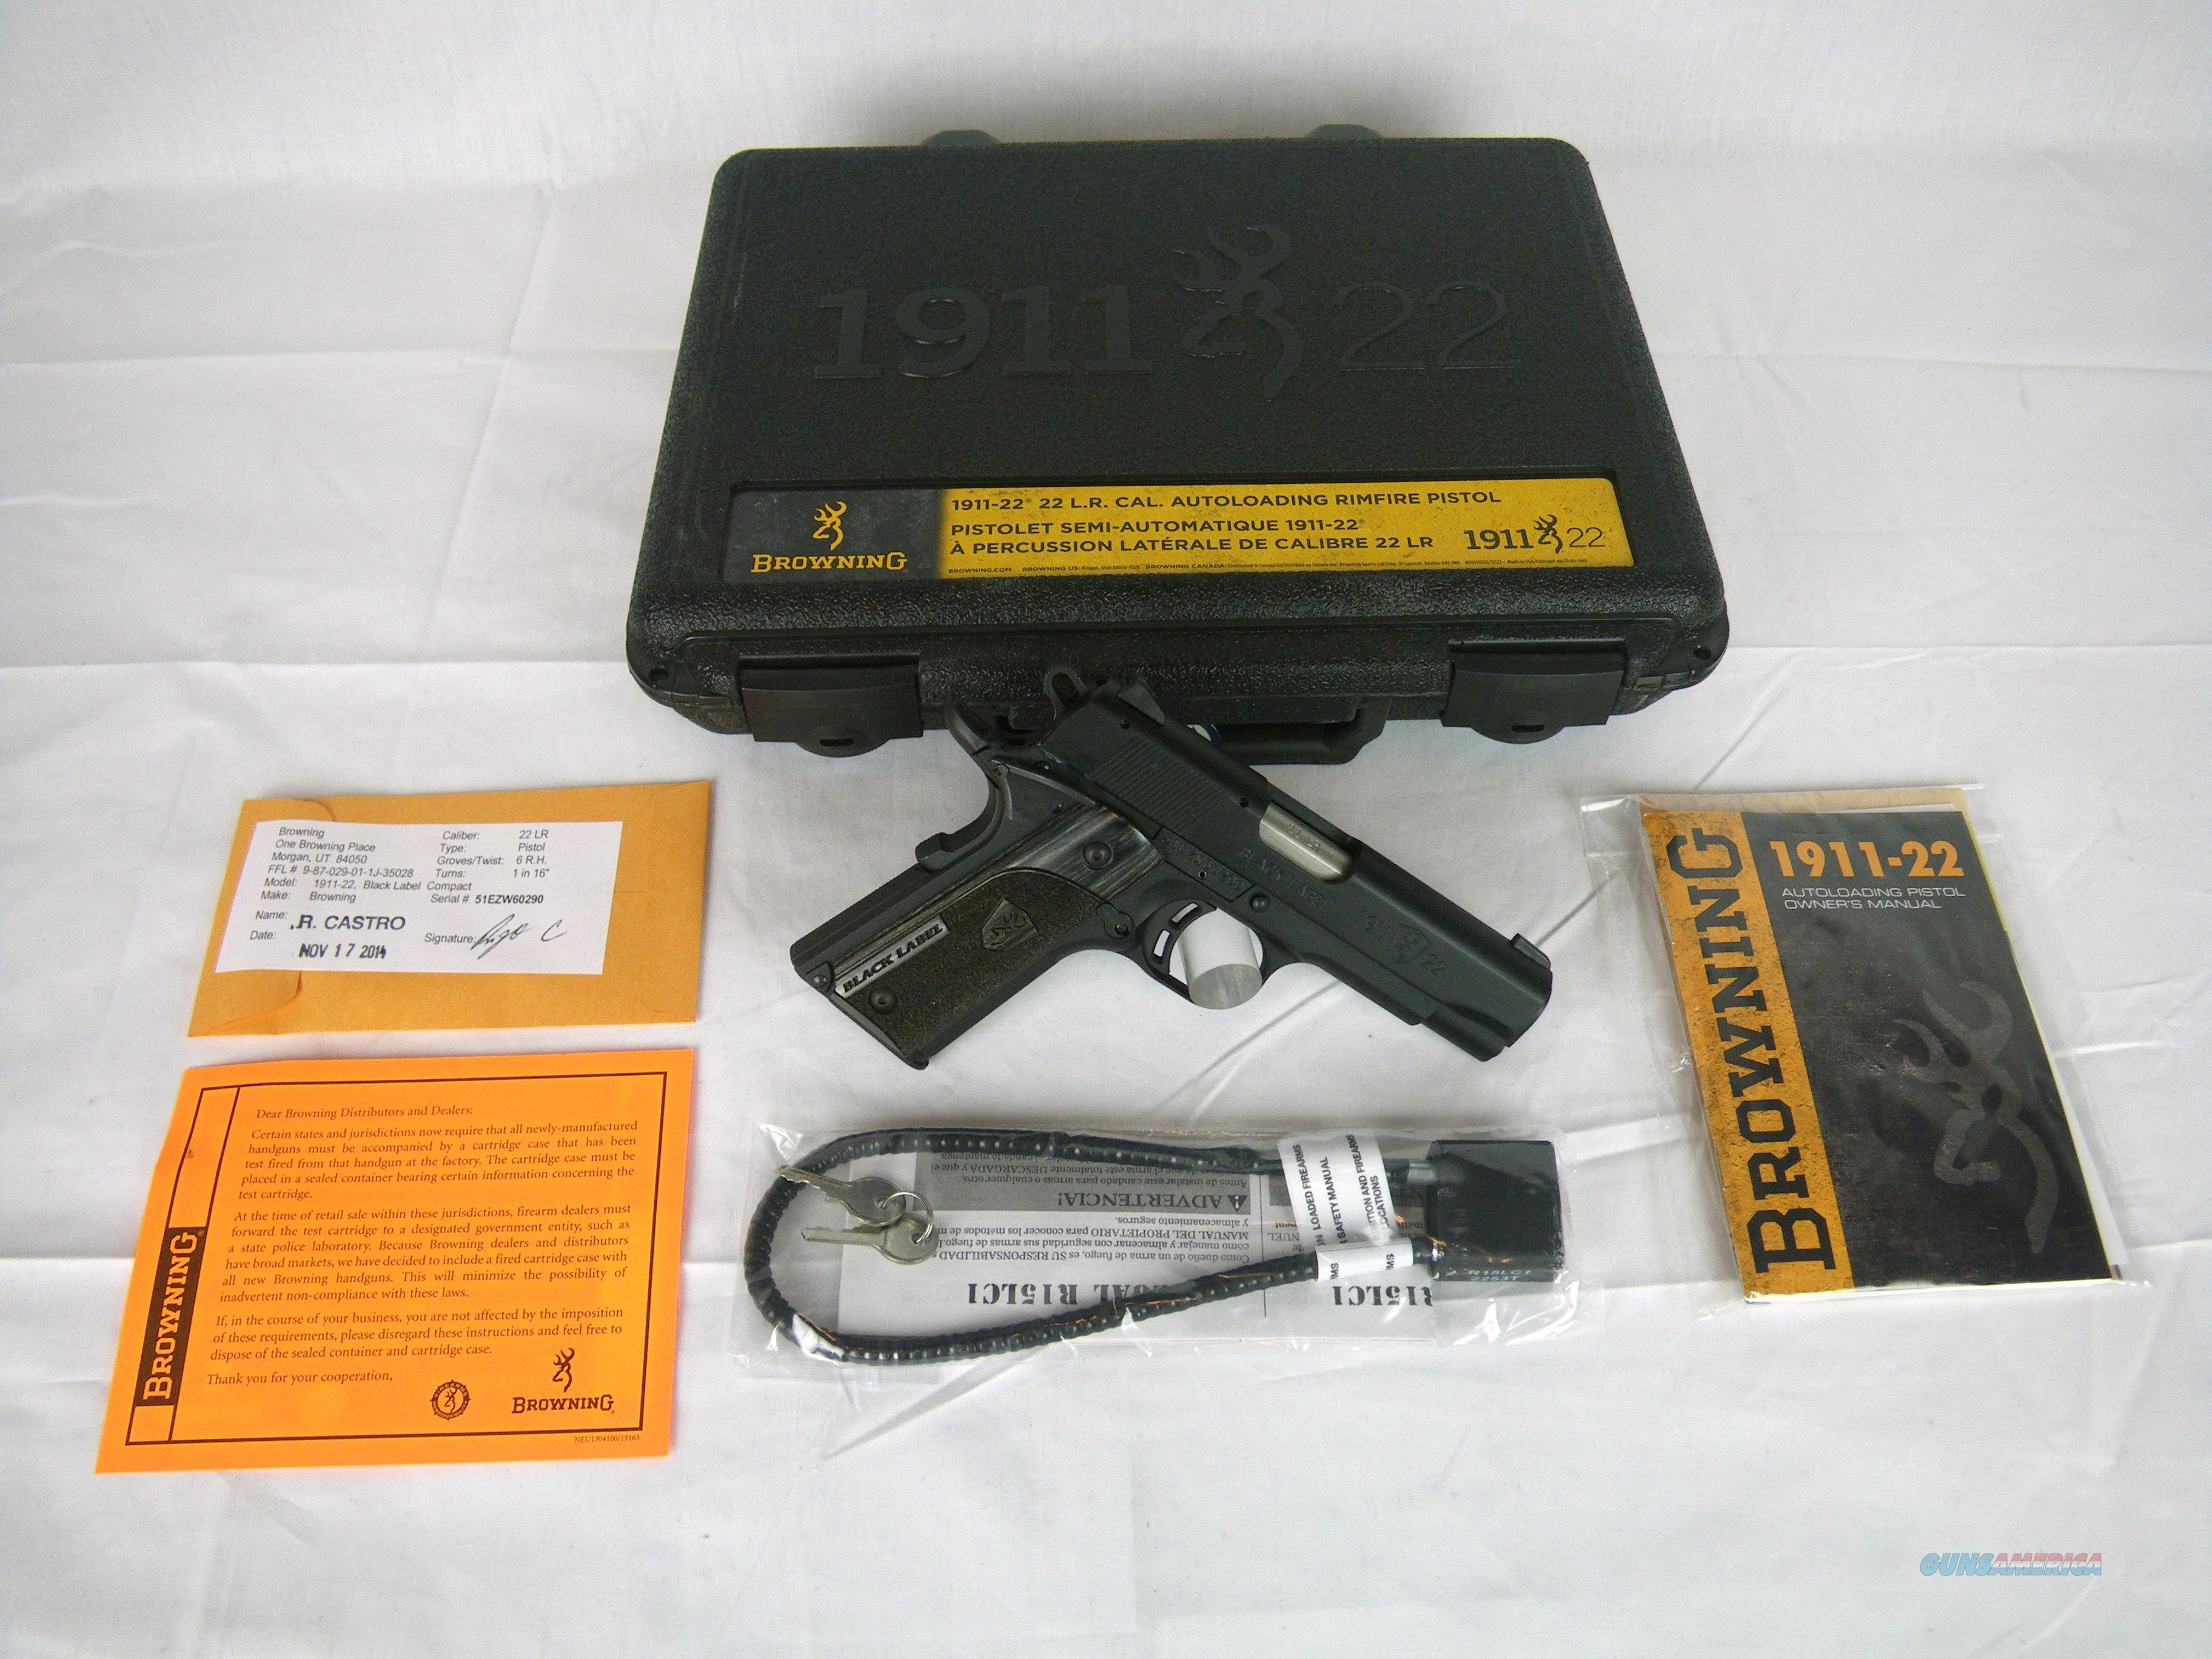 """Browning 1911-22 Black Label Cmpct 22lr 3-5/8"""" NEW #051815490  Guns > Pistols > Browning Pistols > Other Autos"""